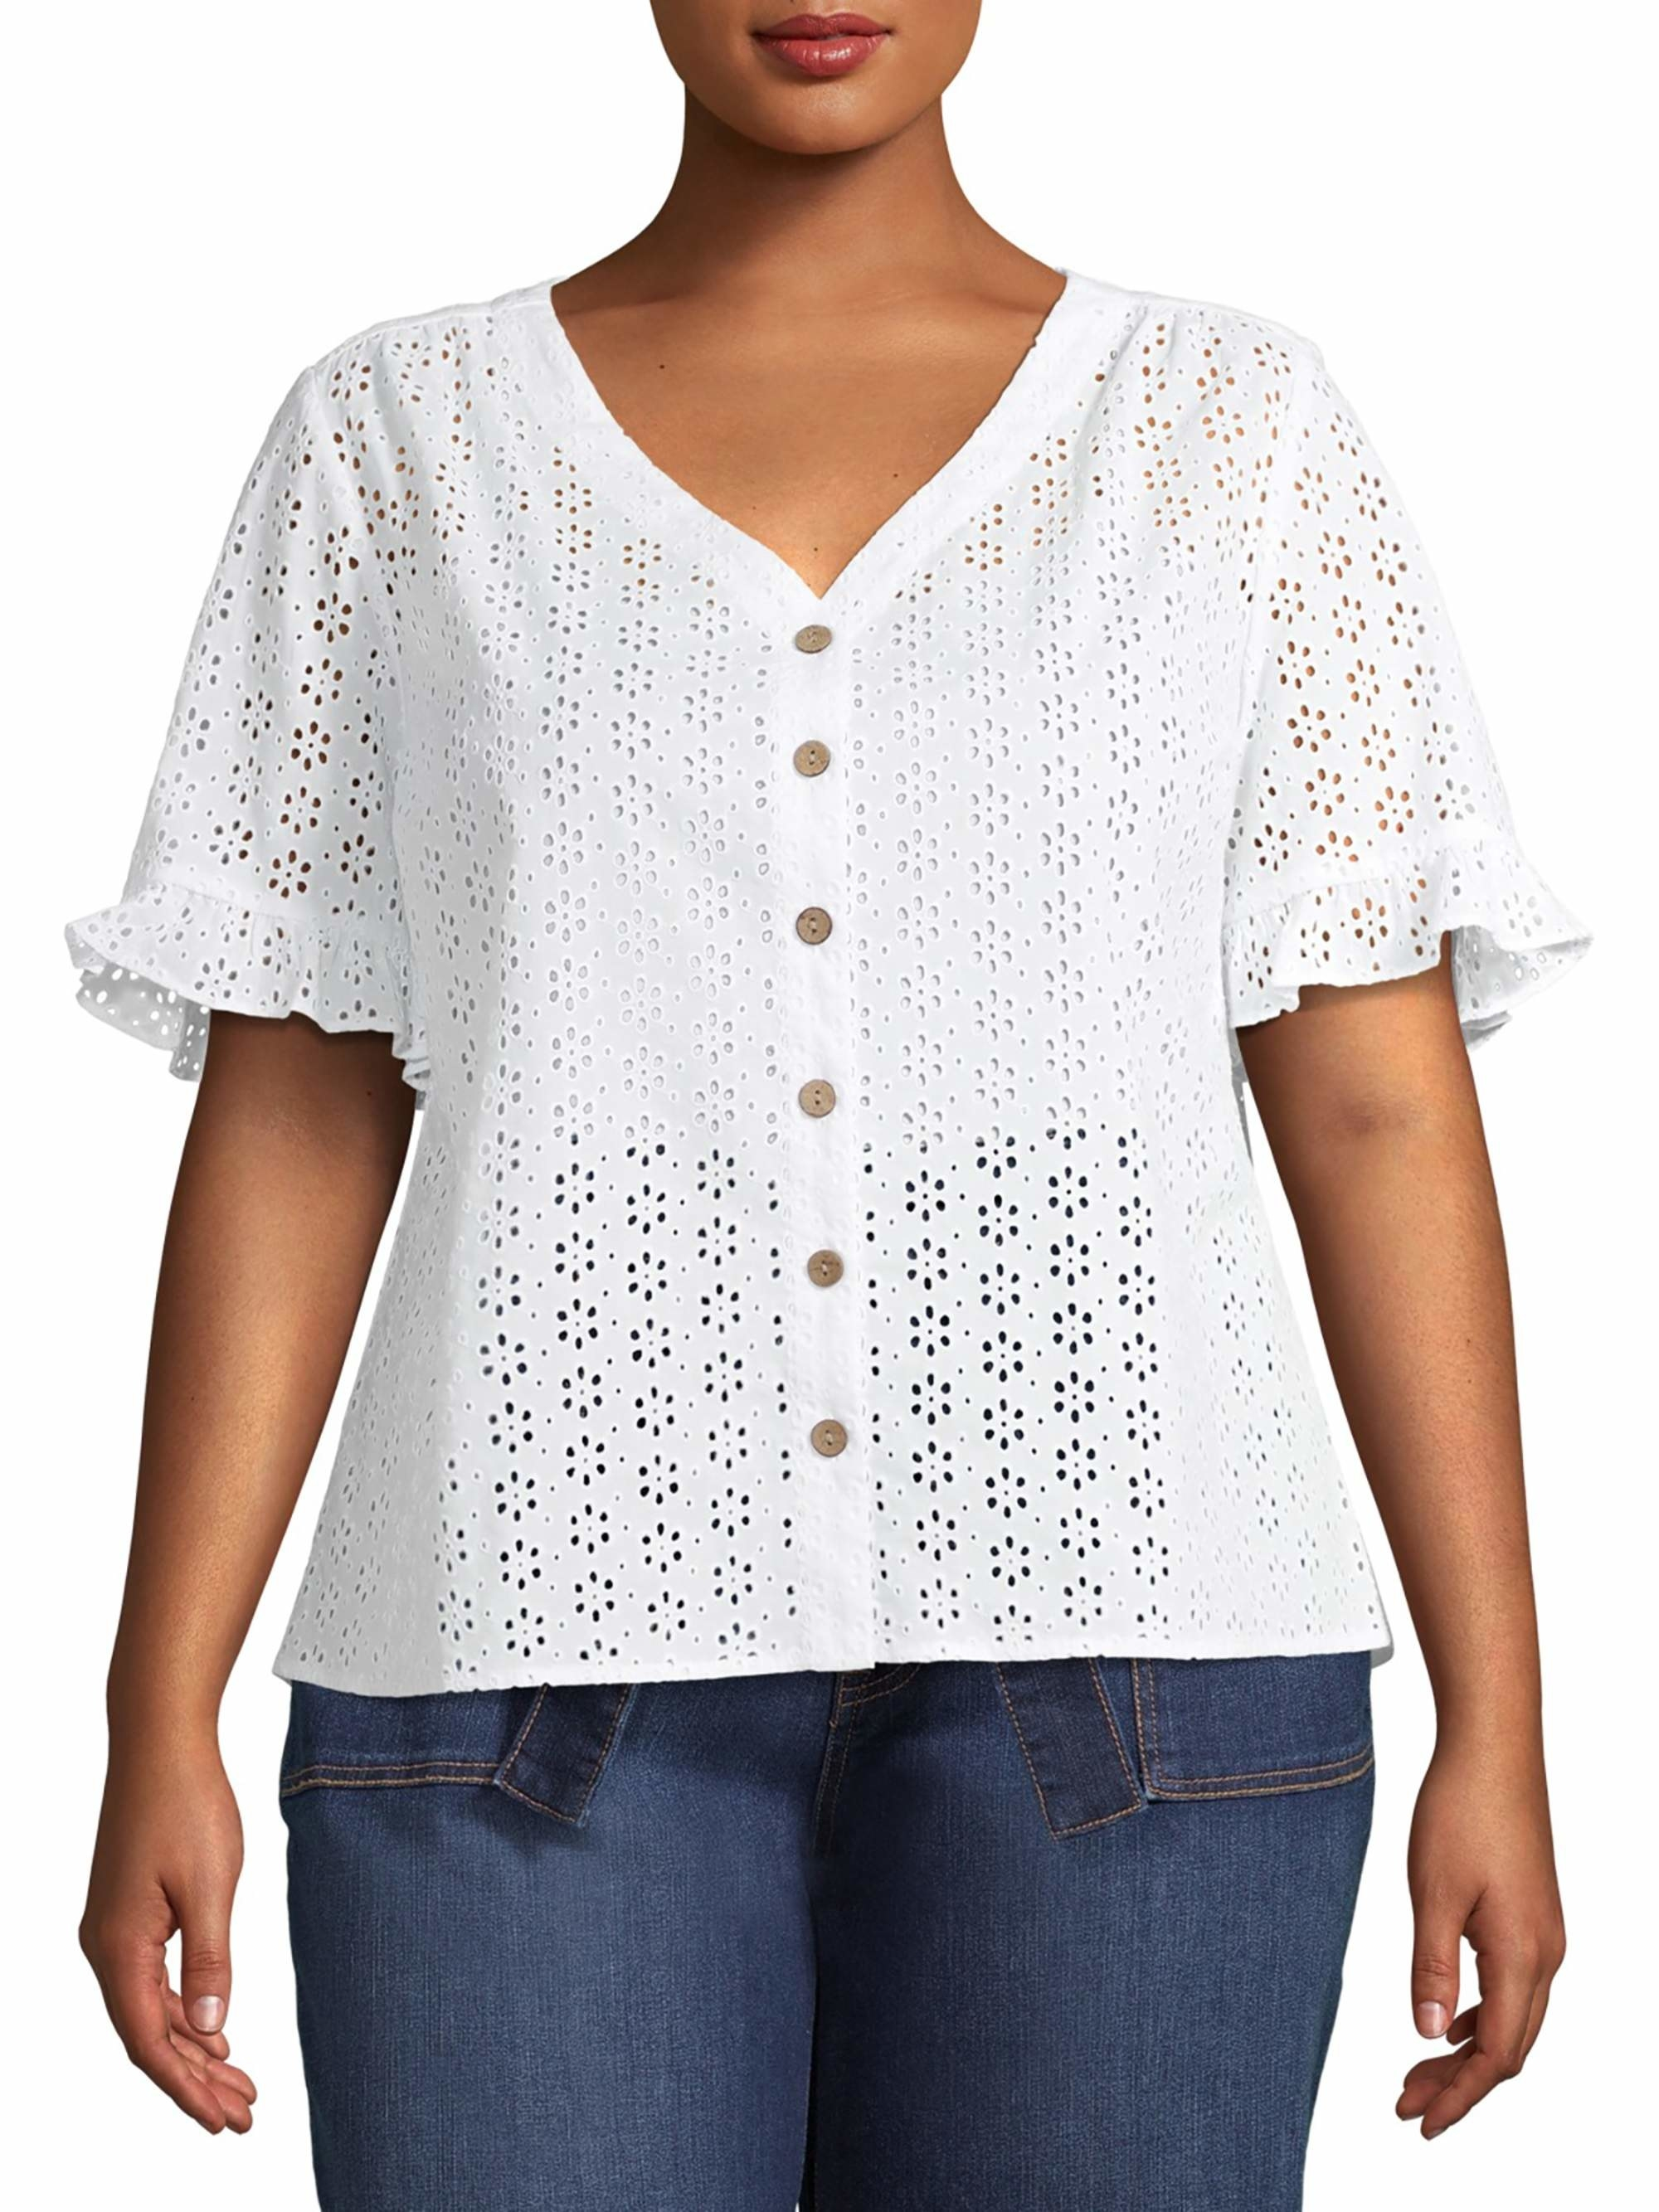 model in white eyelet top with ruffled sleeves